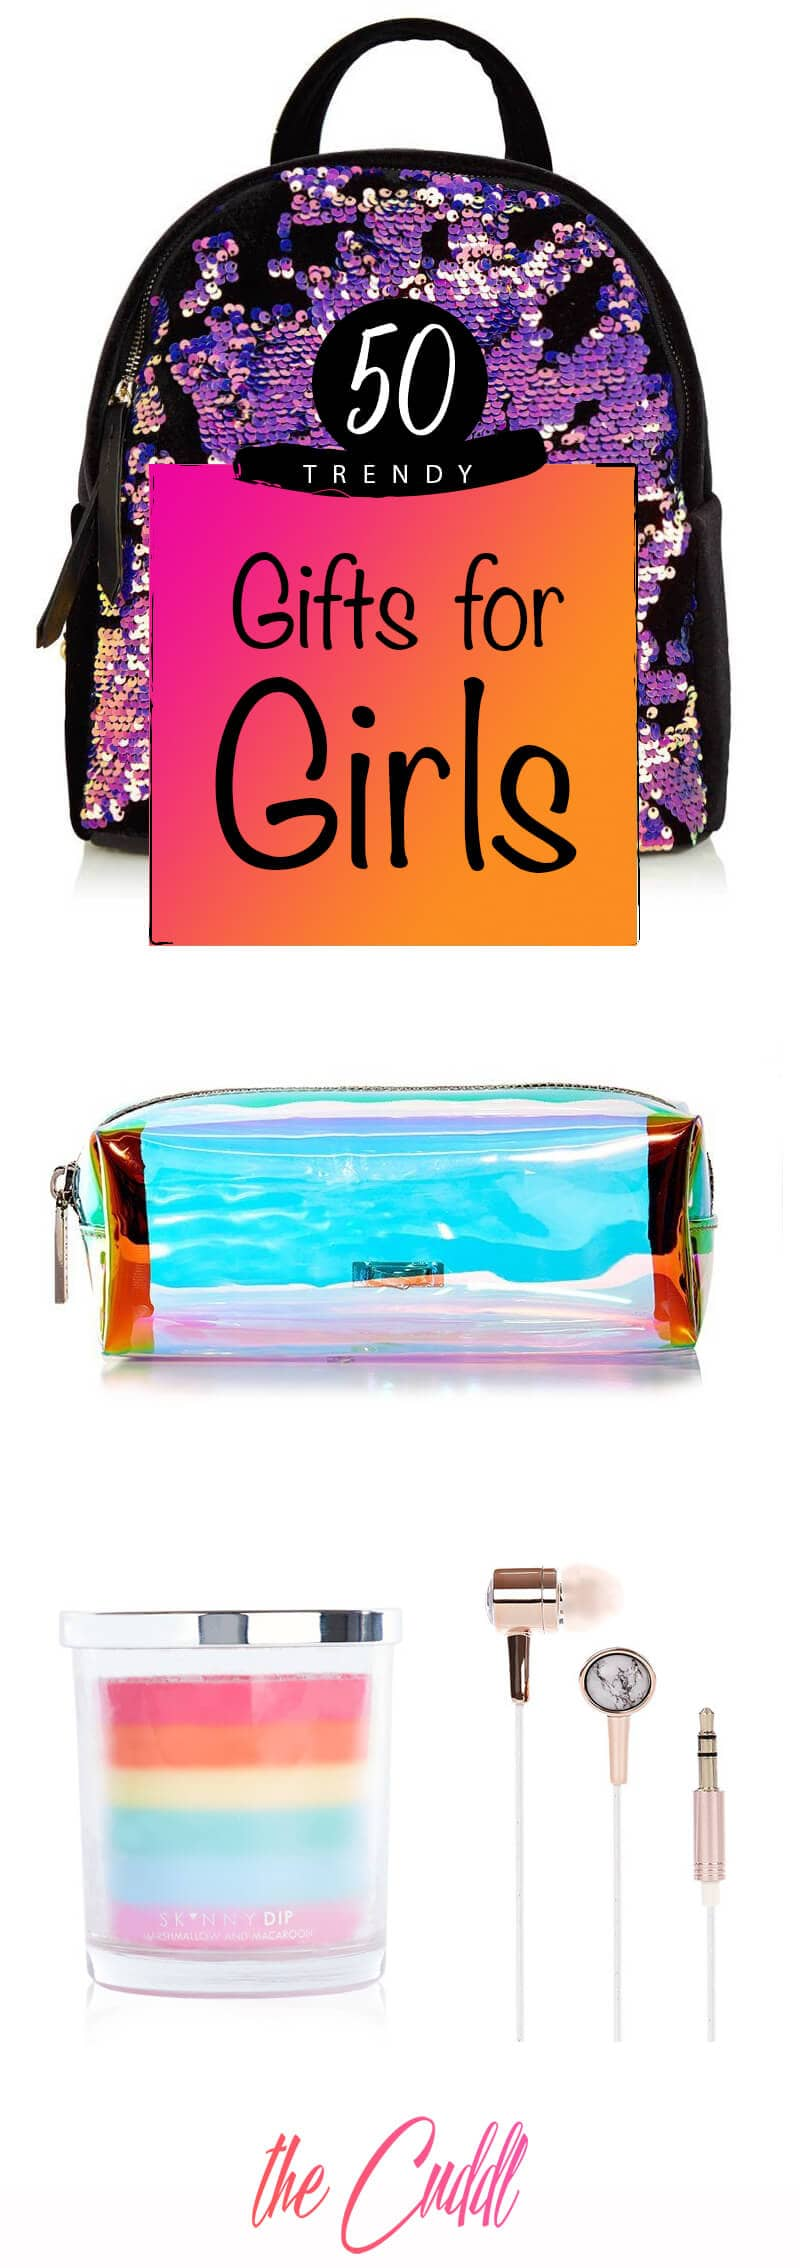 50 Trendy Gifts for Girls to Make Any Lady's Day